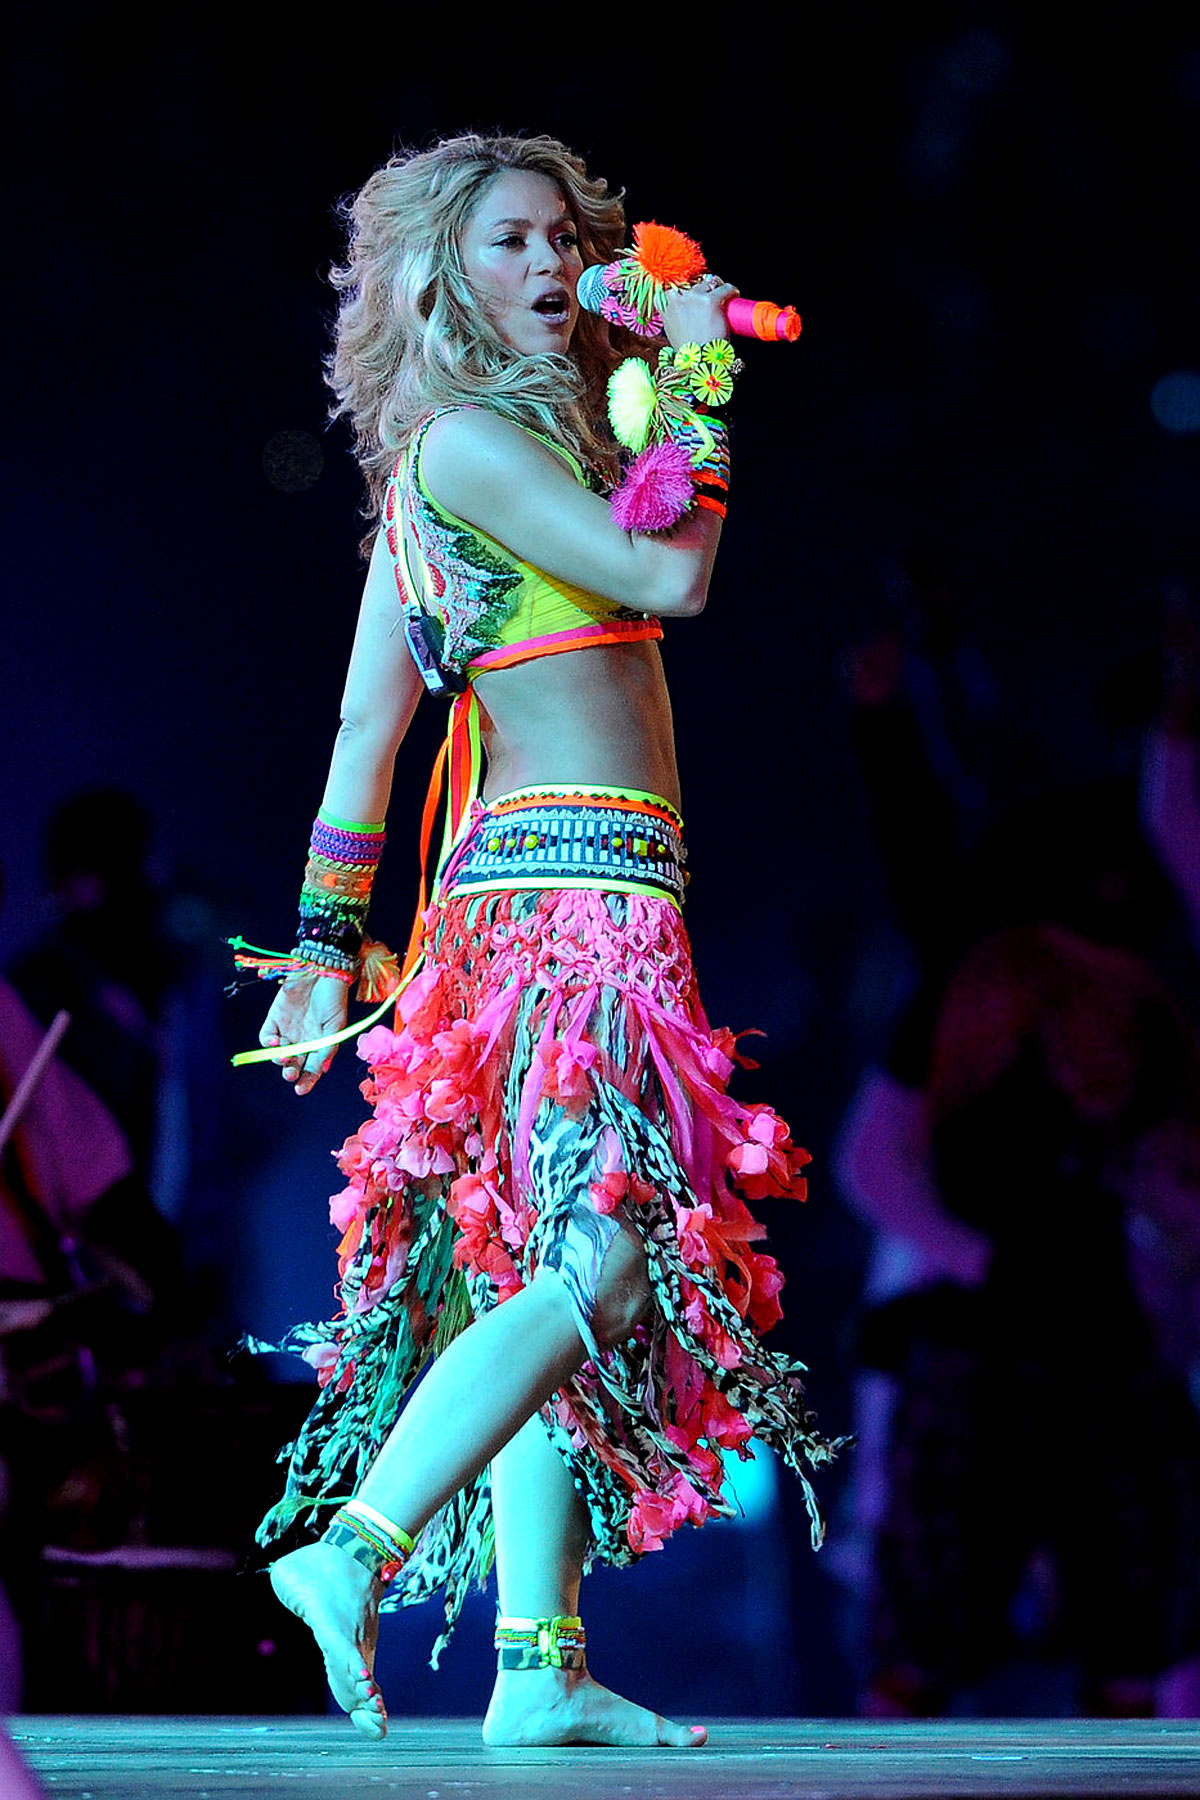 Shakira Wears Neon Tribal Uniform At World Cup (PHOTOS)